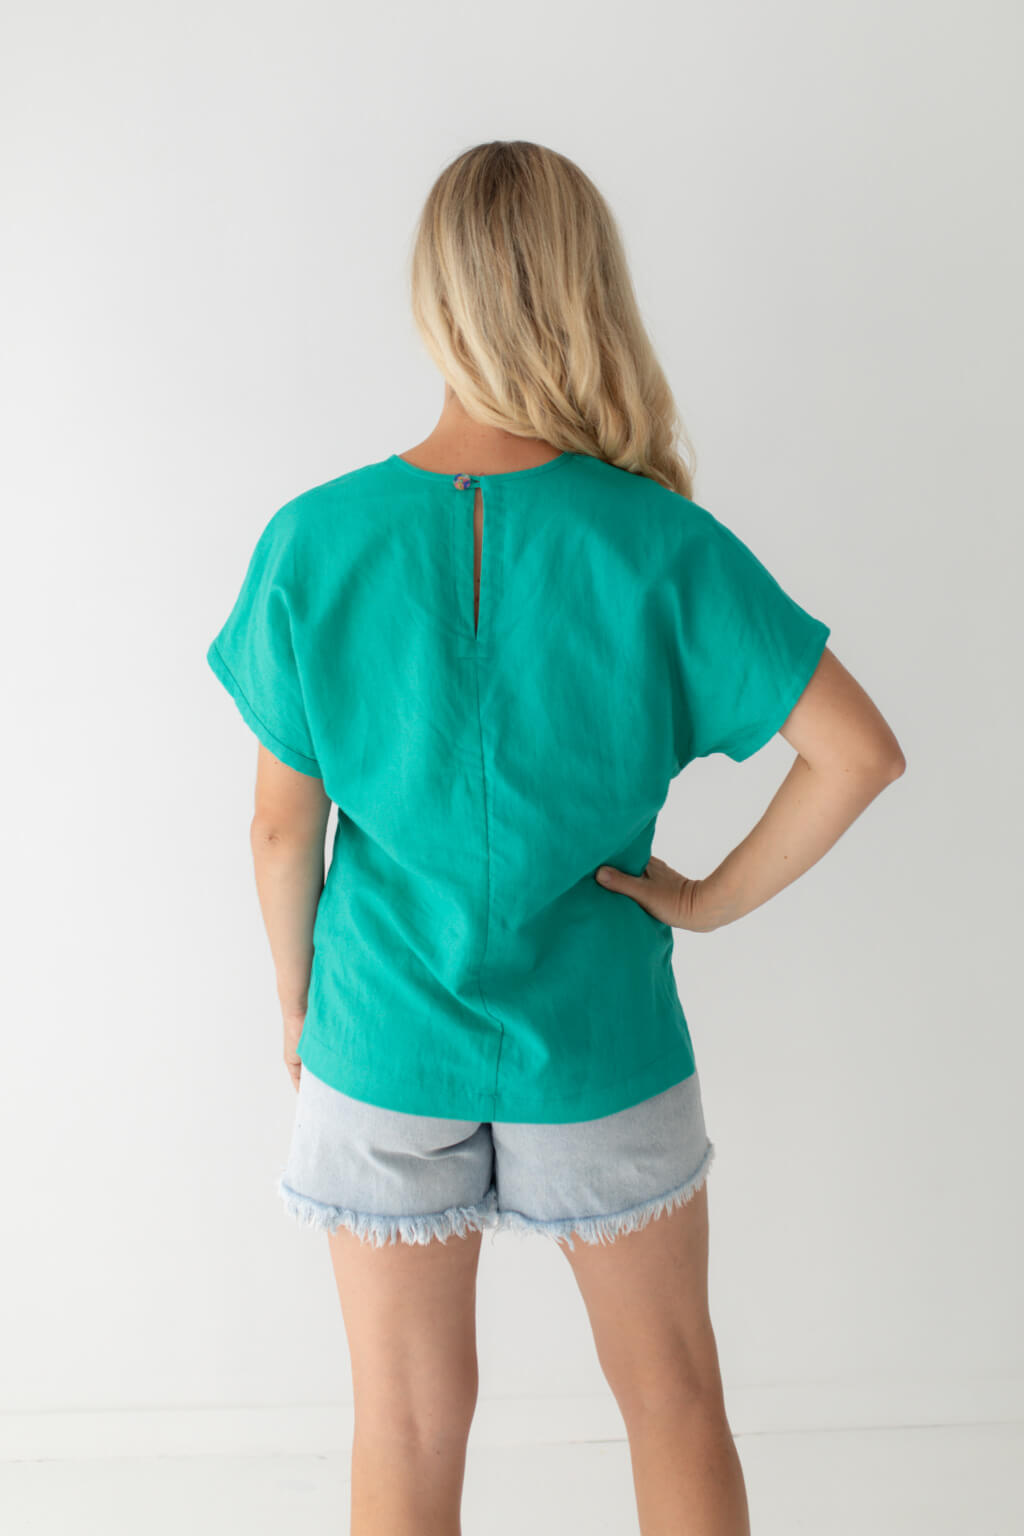 made in Australia linen top